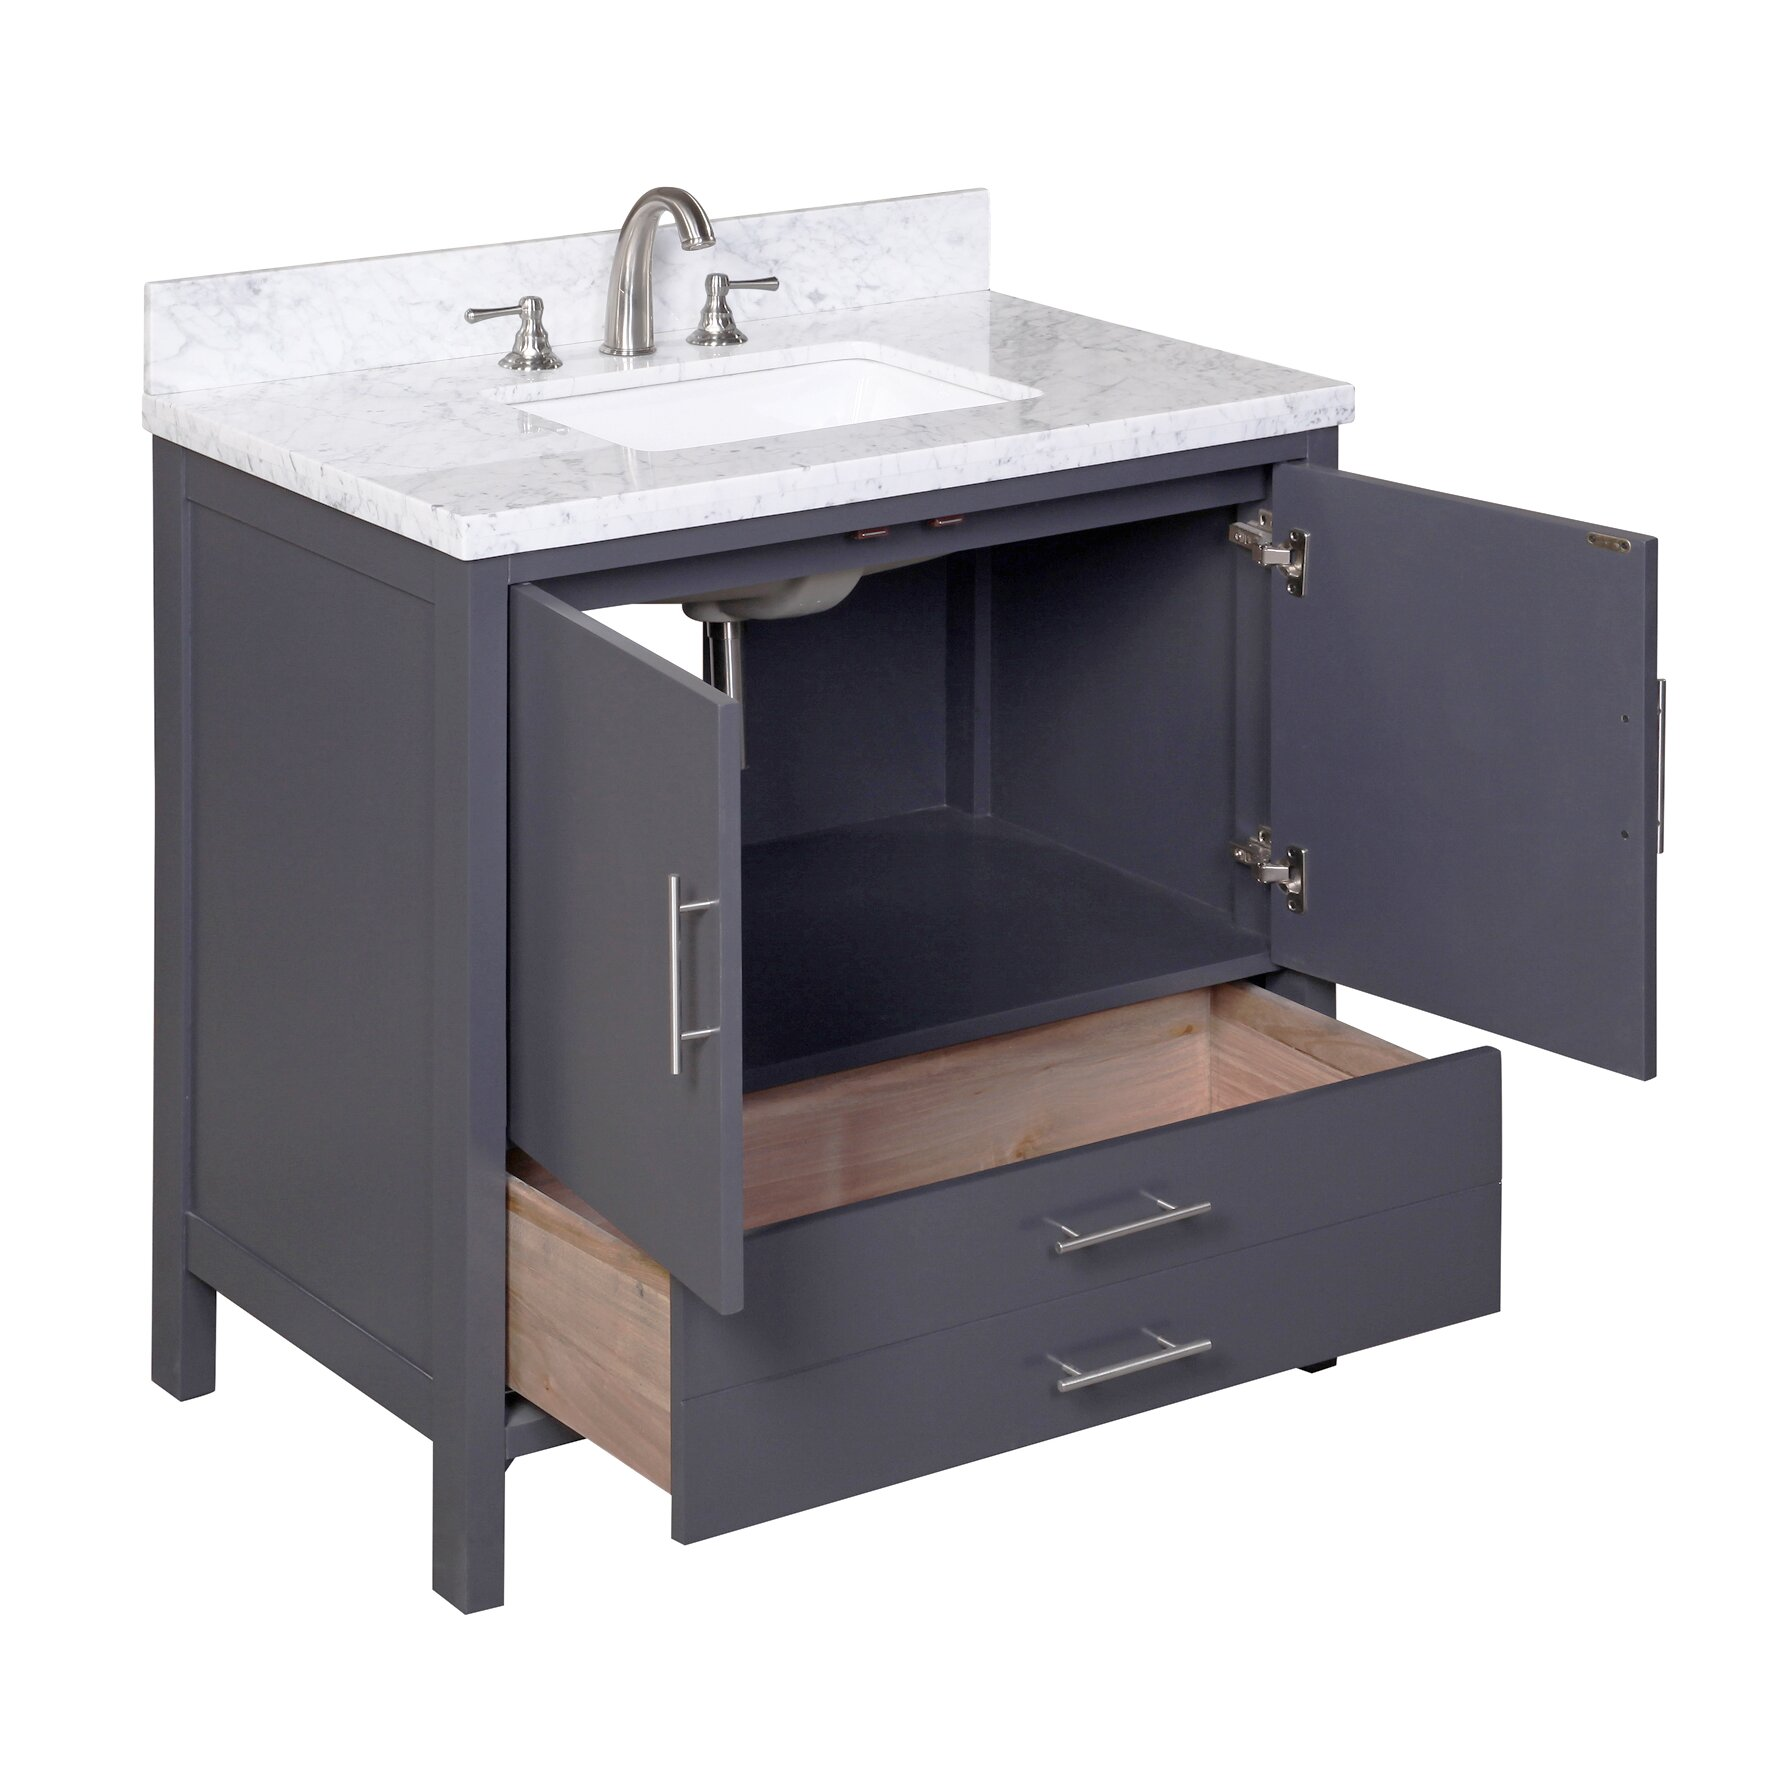 Kbc california 36 single bathroom vanity set reviews for Bath and vanity set